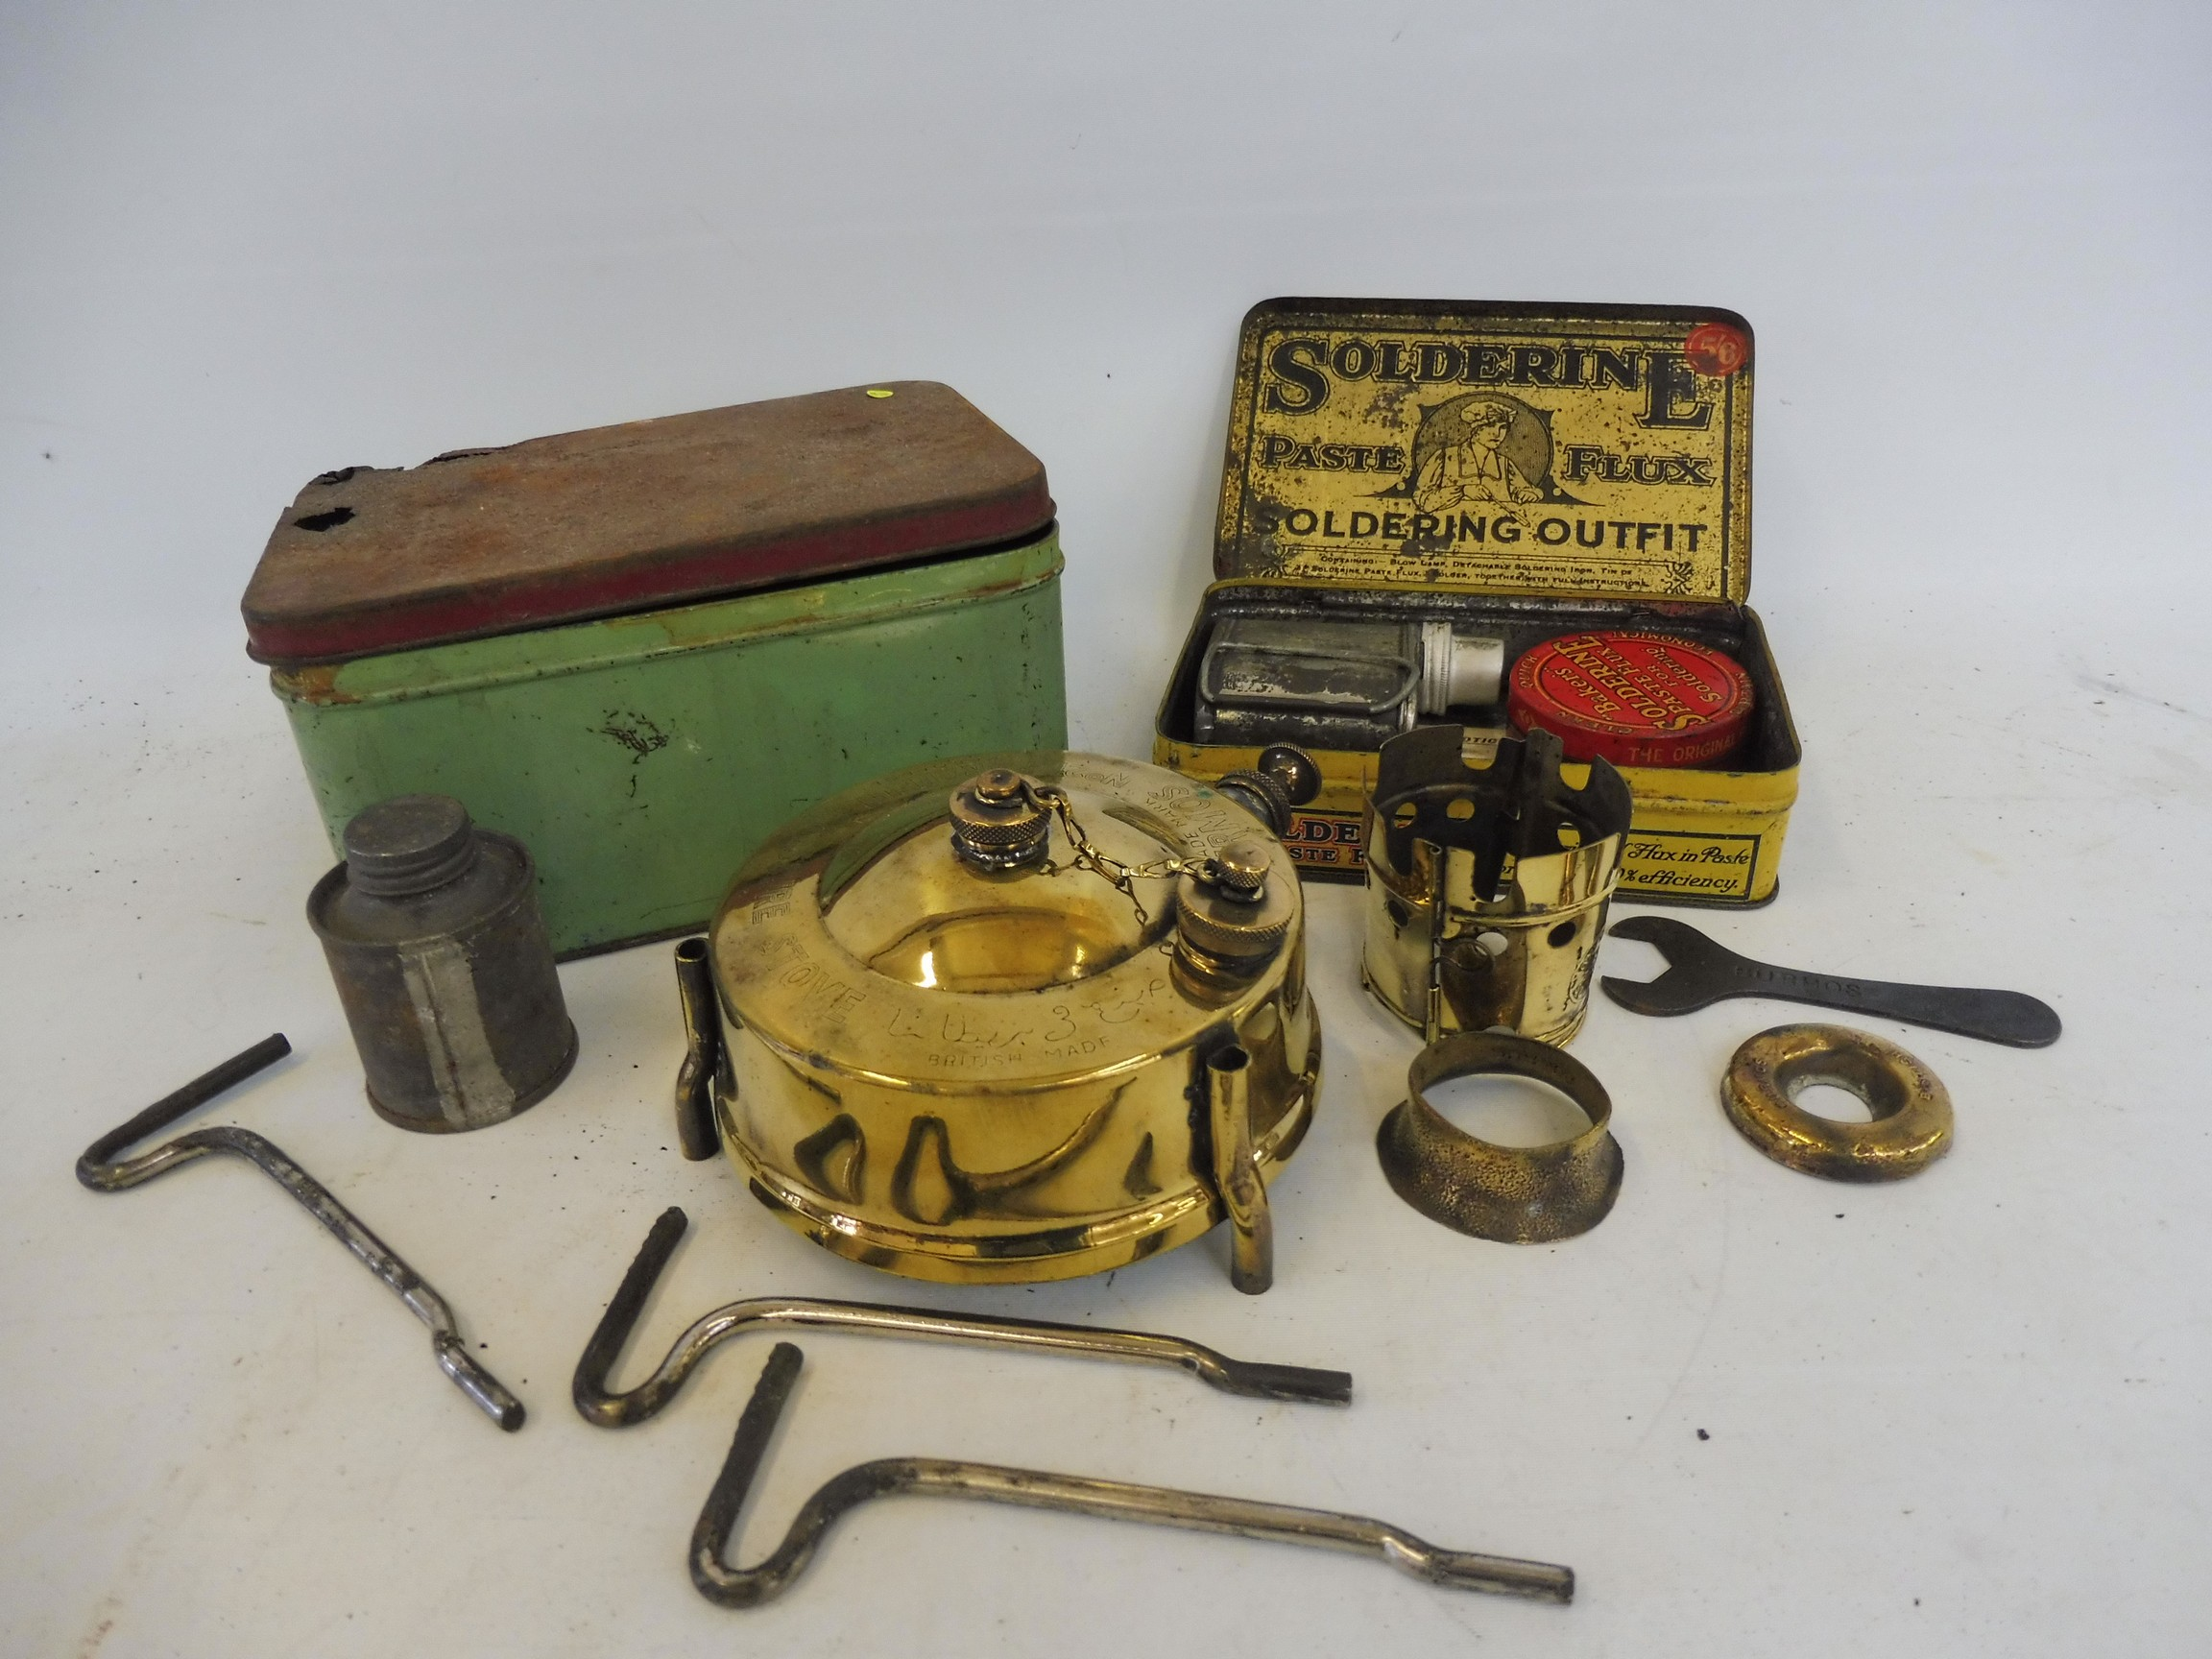 A Burmos polished brass No. 21 paraffin pressure stove outfit and a soldering outfit in original